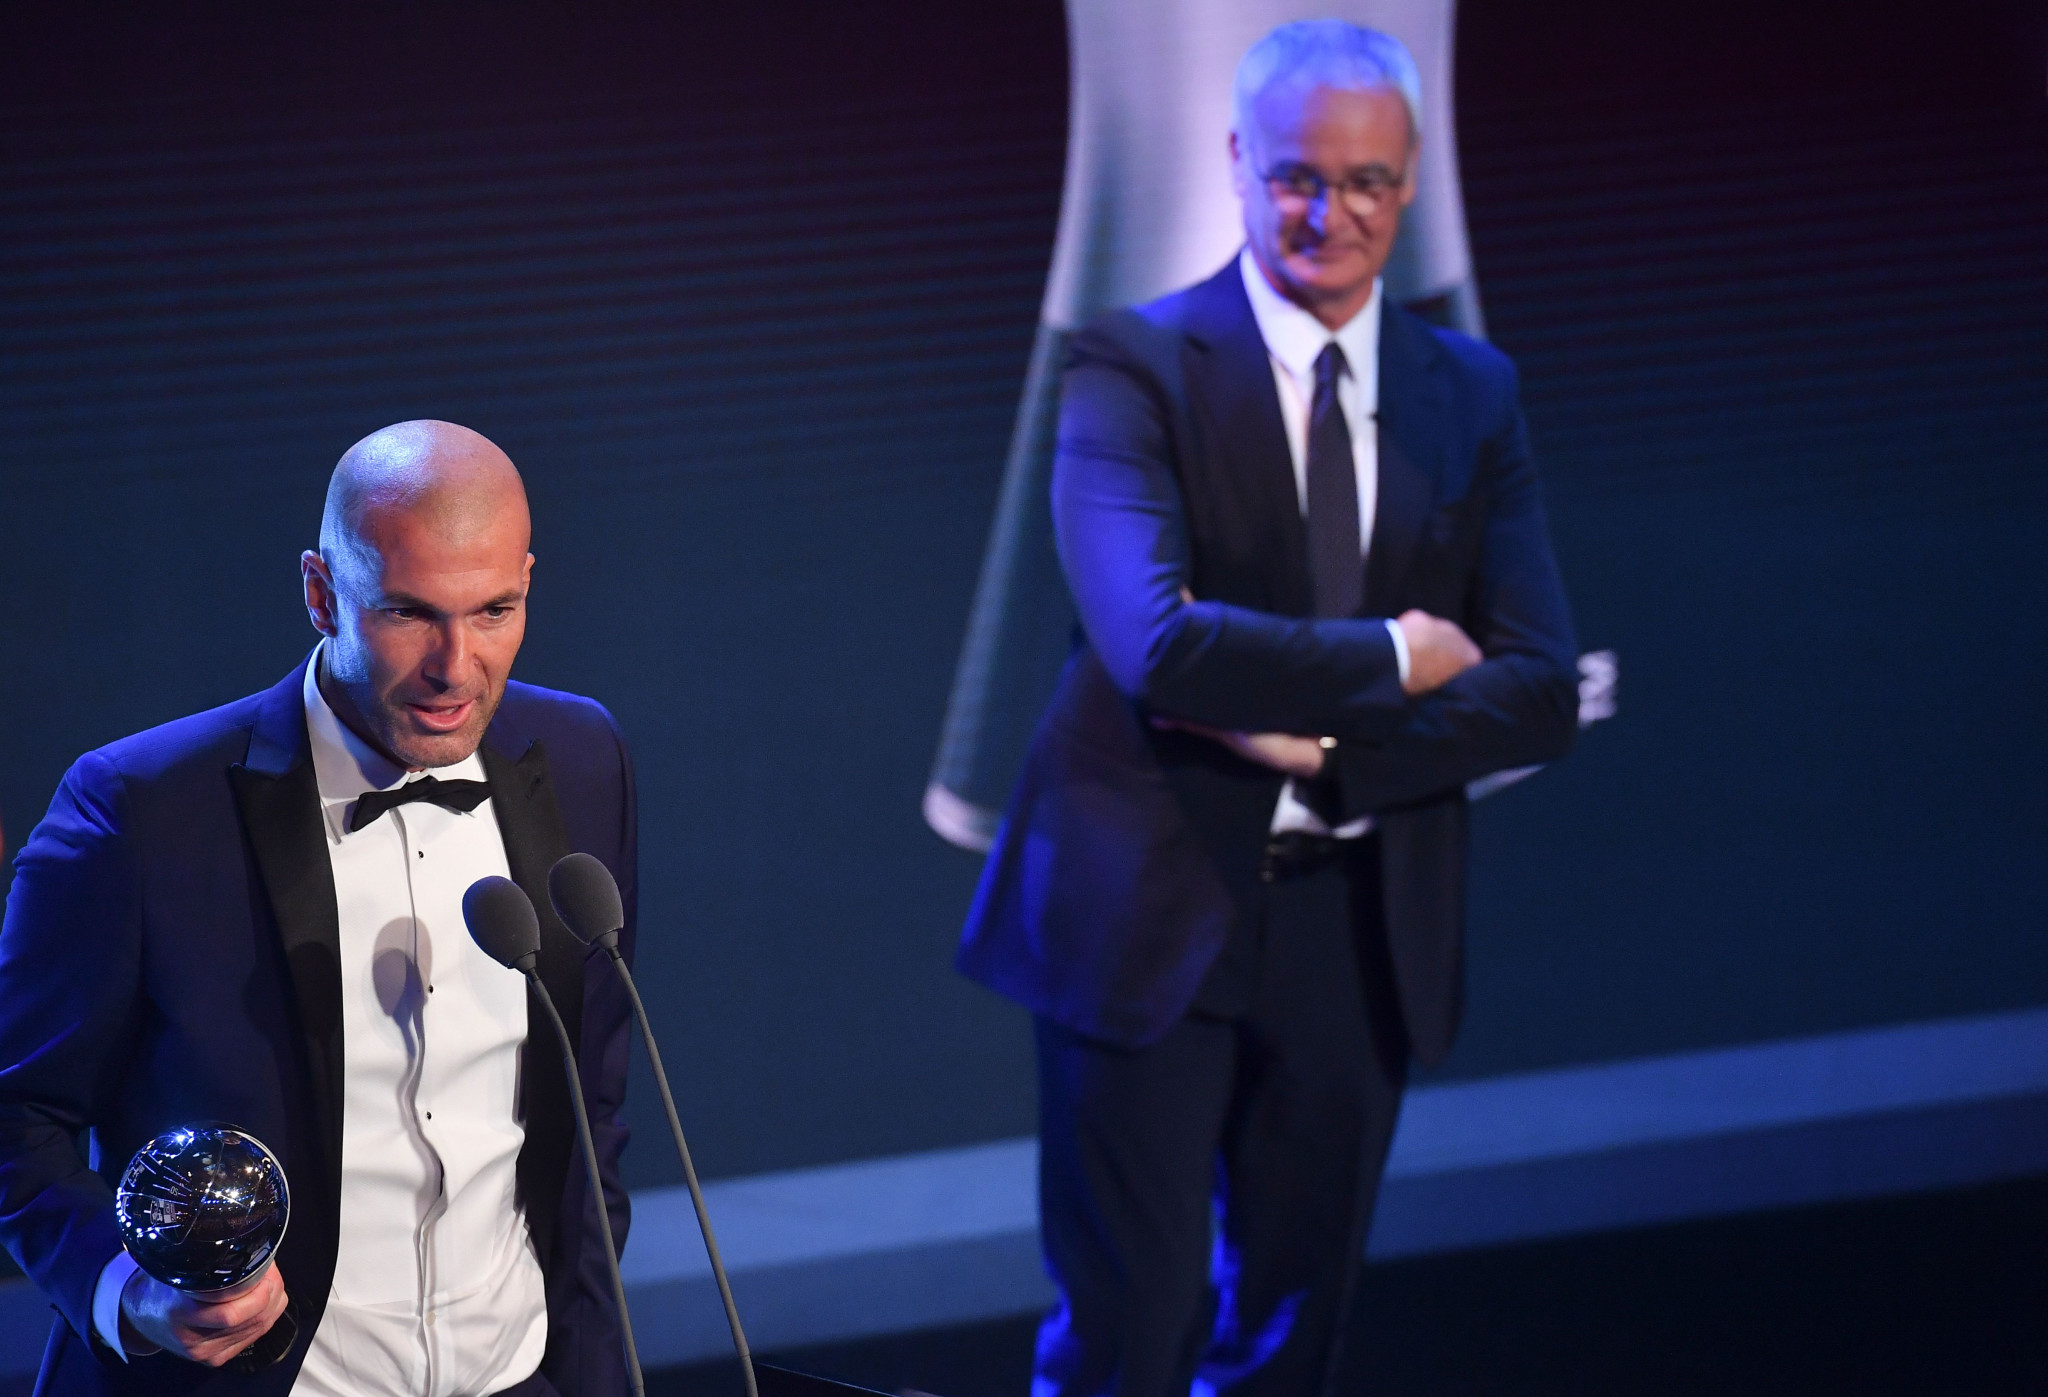 Zinédine Zidane won the Men's Coach of the Year prize ©Getty Images